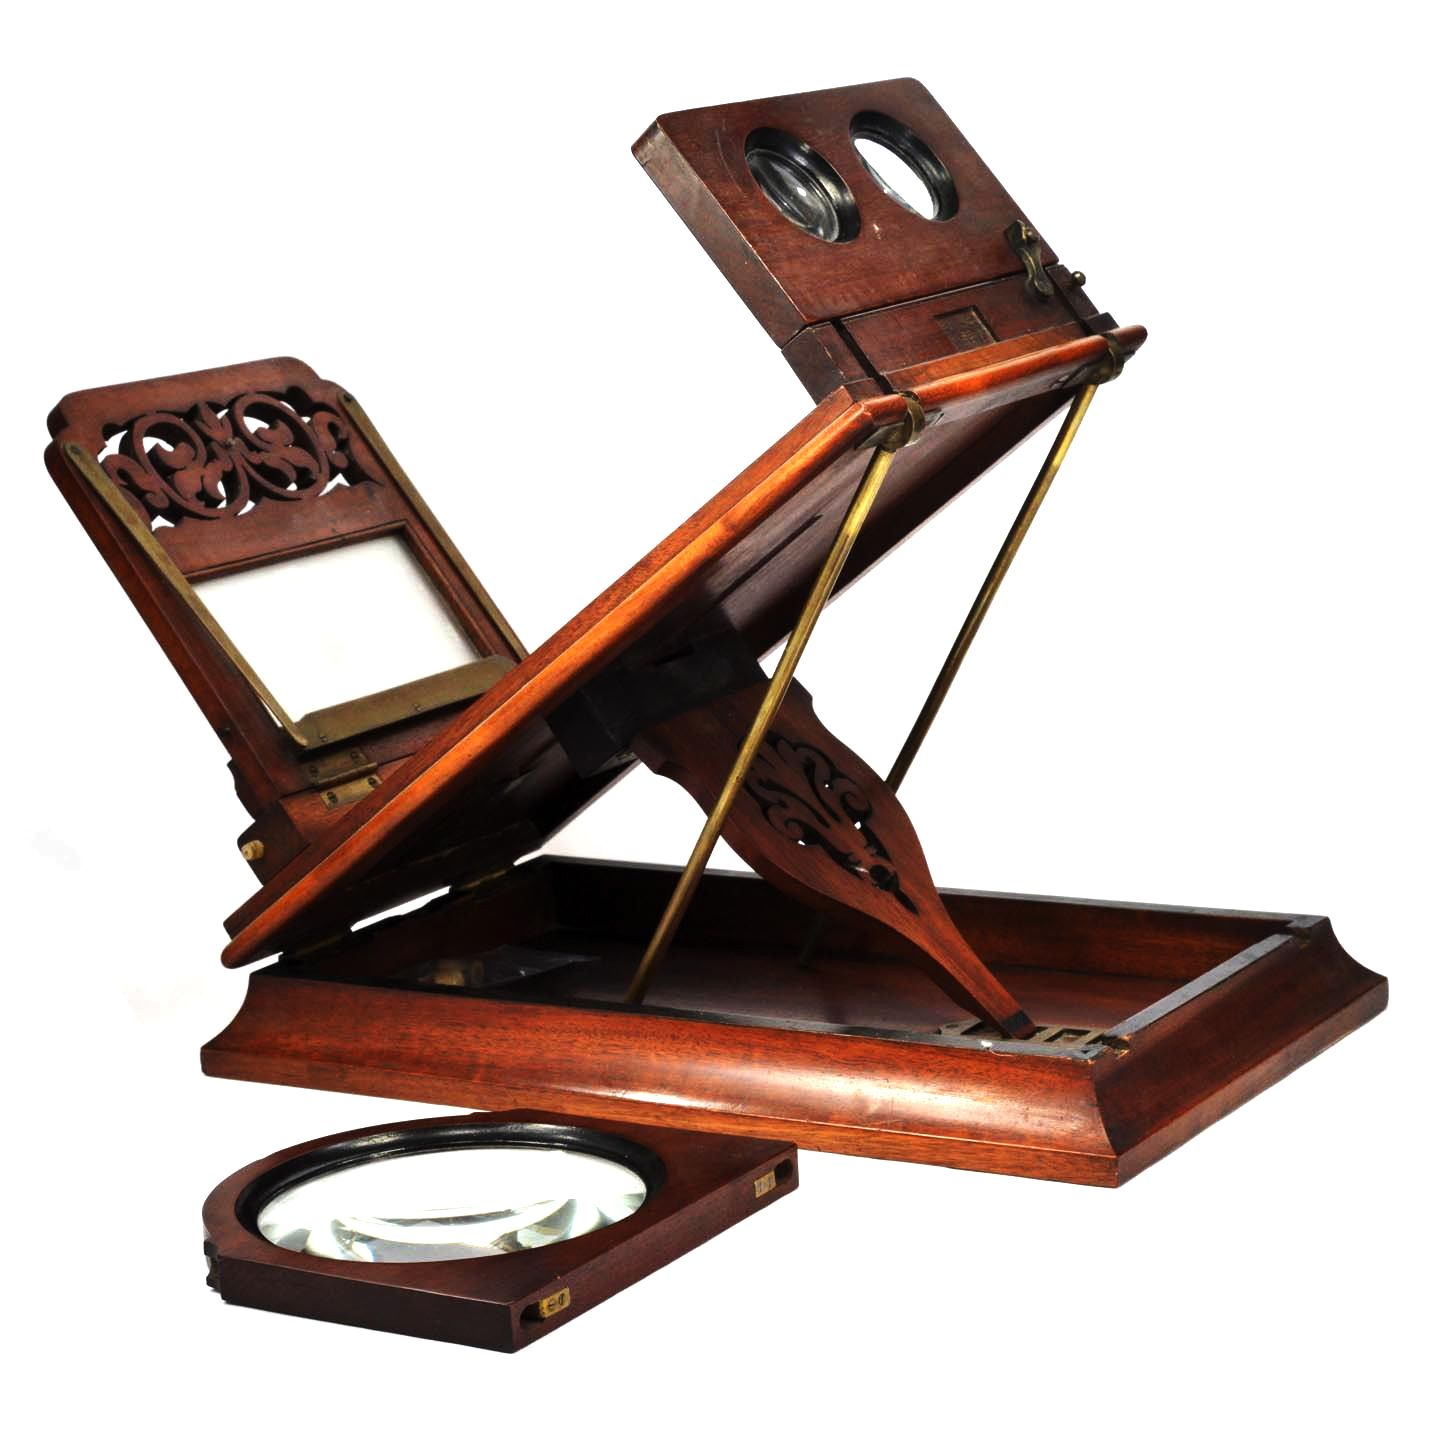 Antique Stereoscope Tabletop